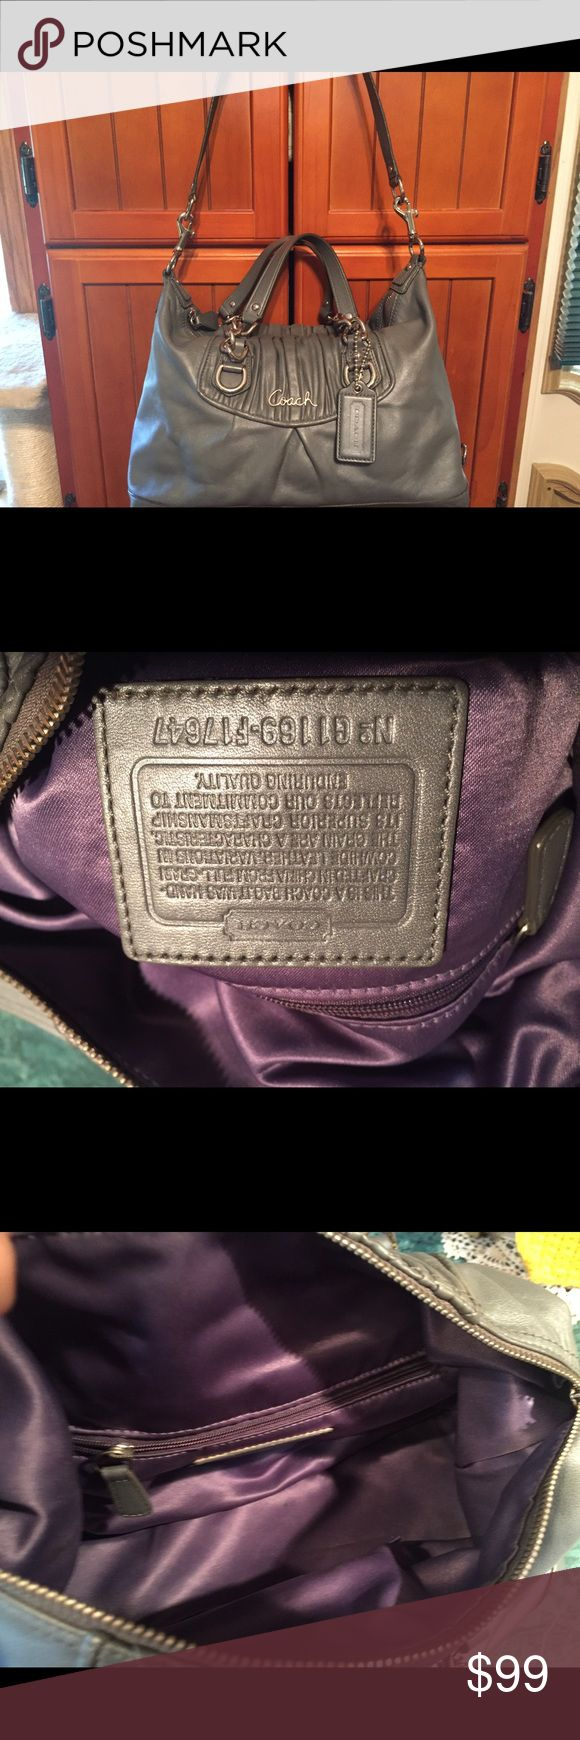 Authentic Ashley Coach Satchel Gathered Chain Never Carried Pristine Condition Authentic Ashley Coach Gathered Chain Satchel Leather #G1169-F17647 Must Have Very Rare!!! Coach Bags Satchels